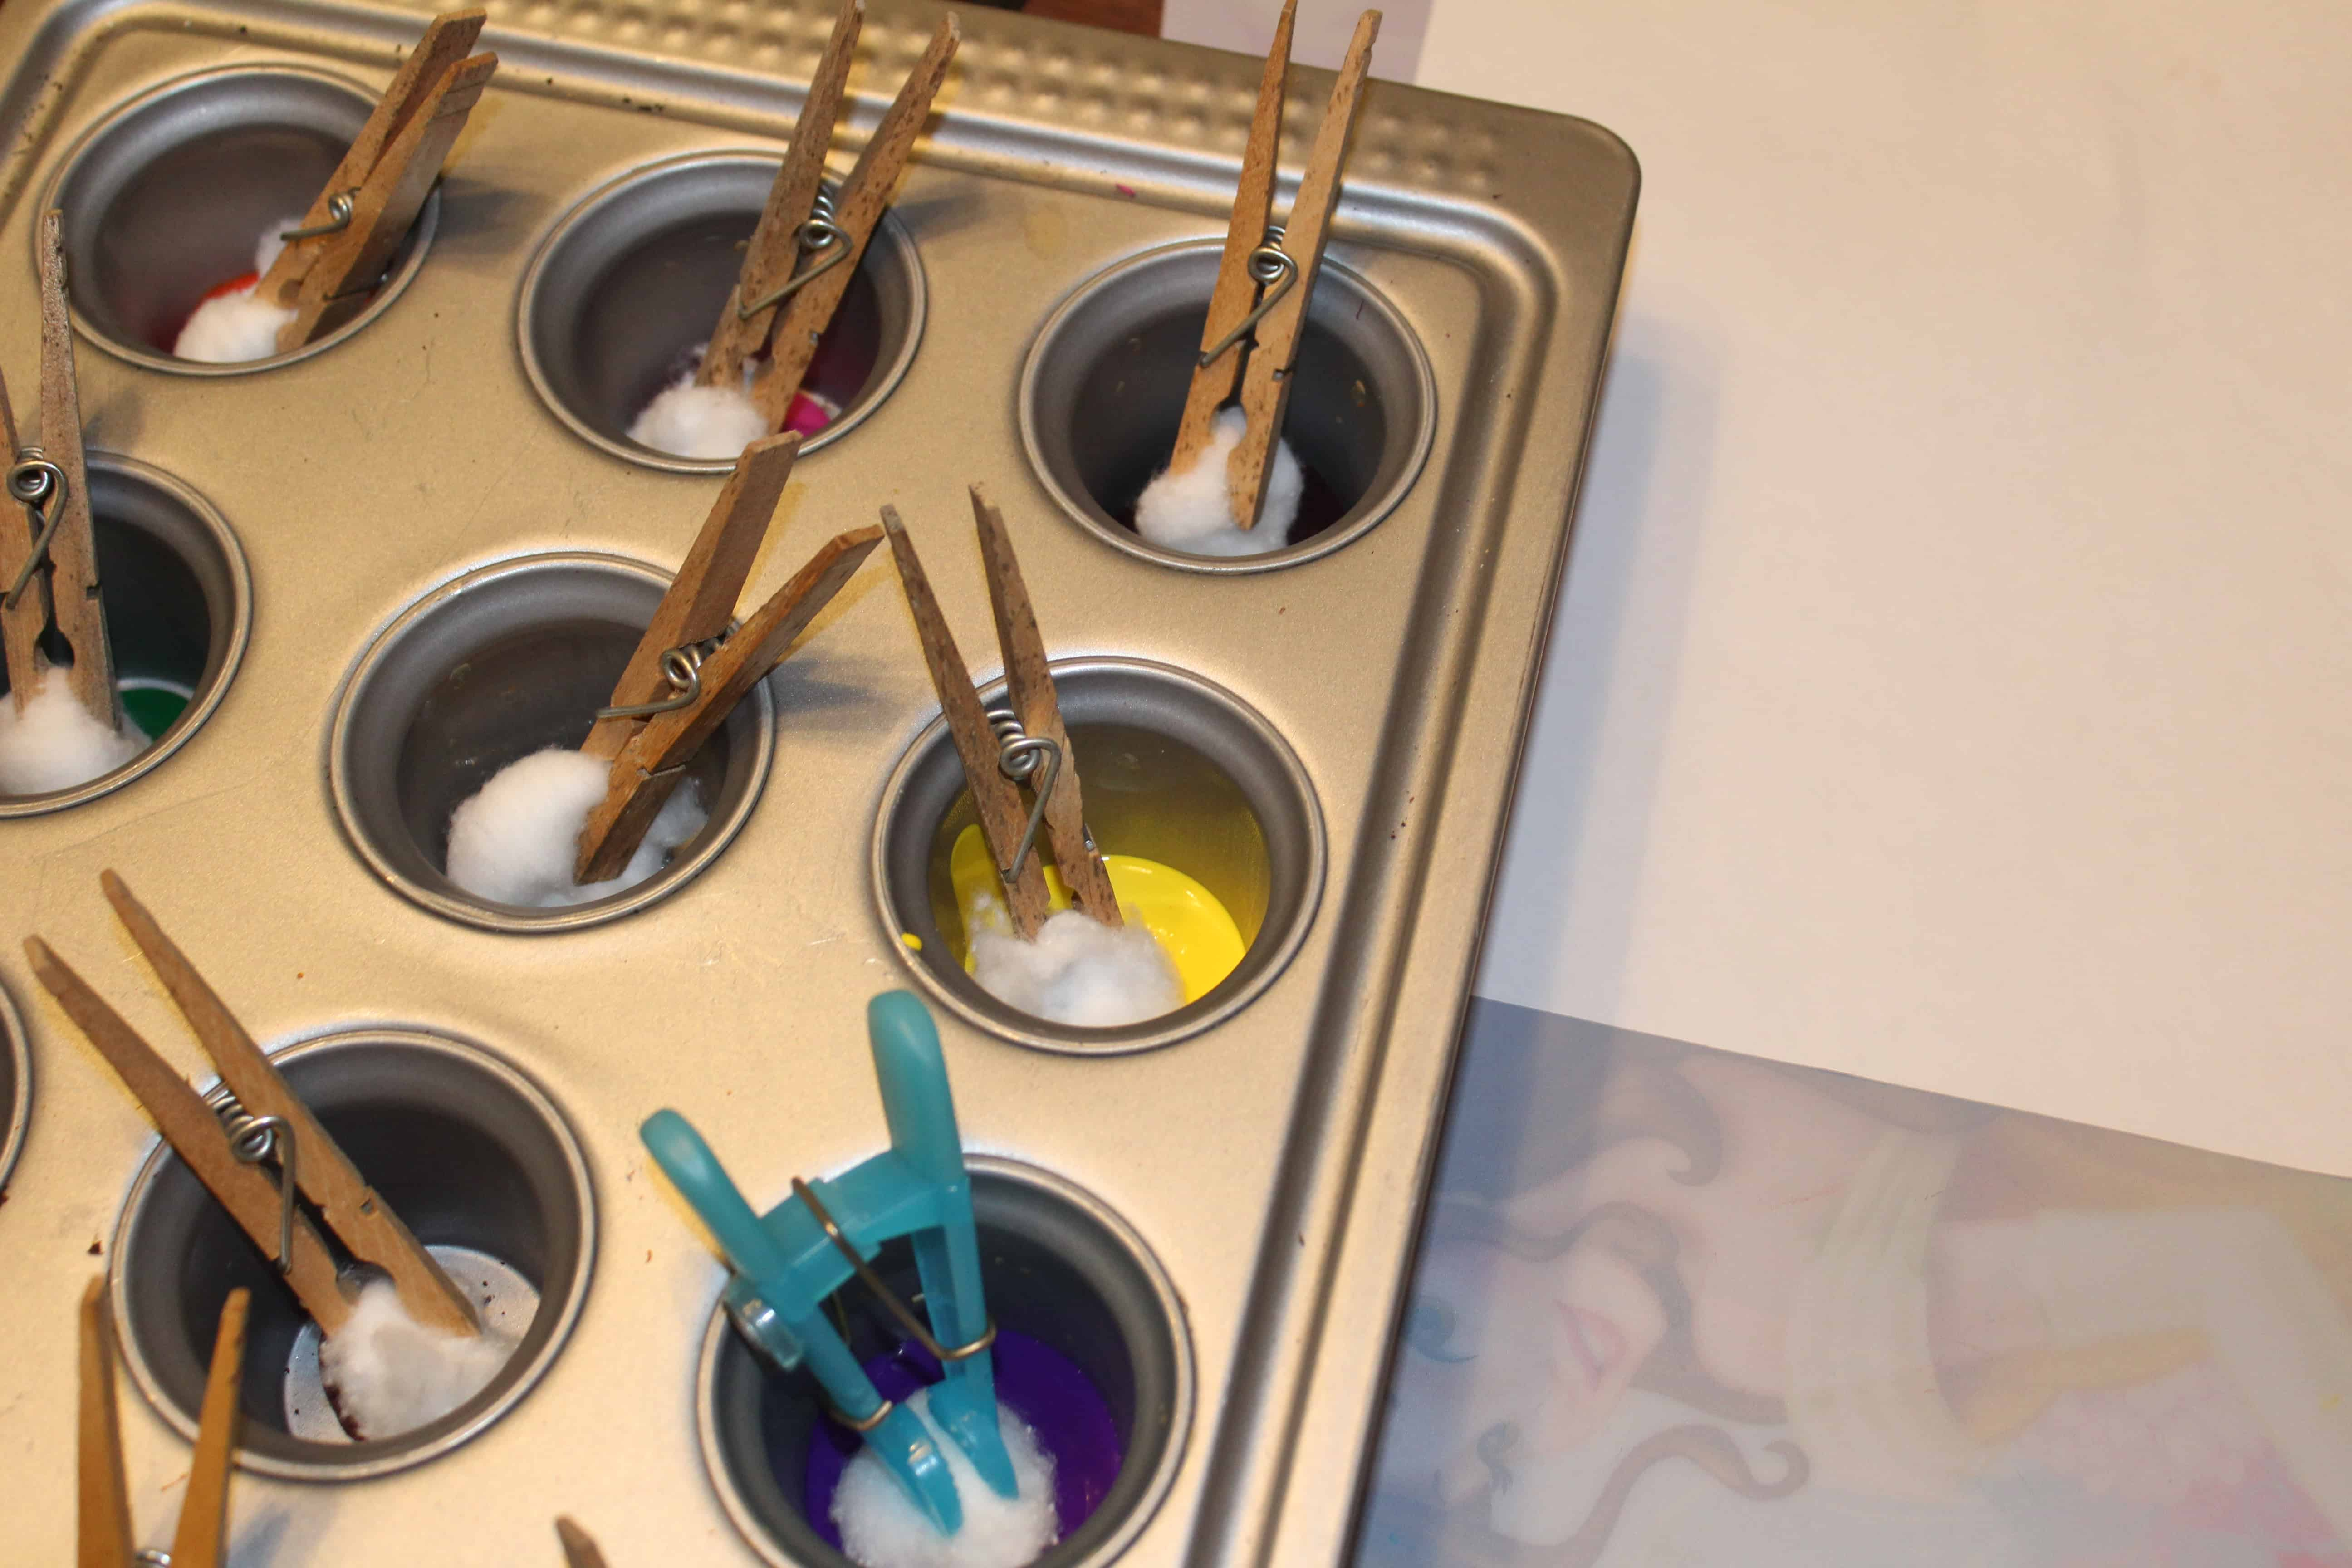 Cupcake tin with different paints in each compartment. Cotton balls held by clothespin dipped in.